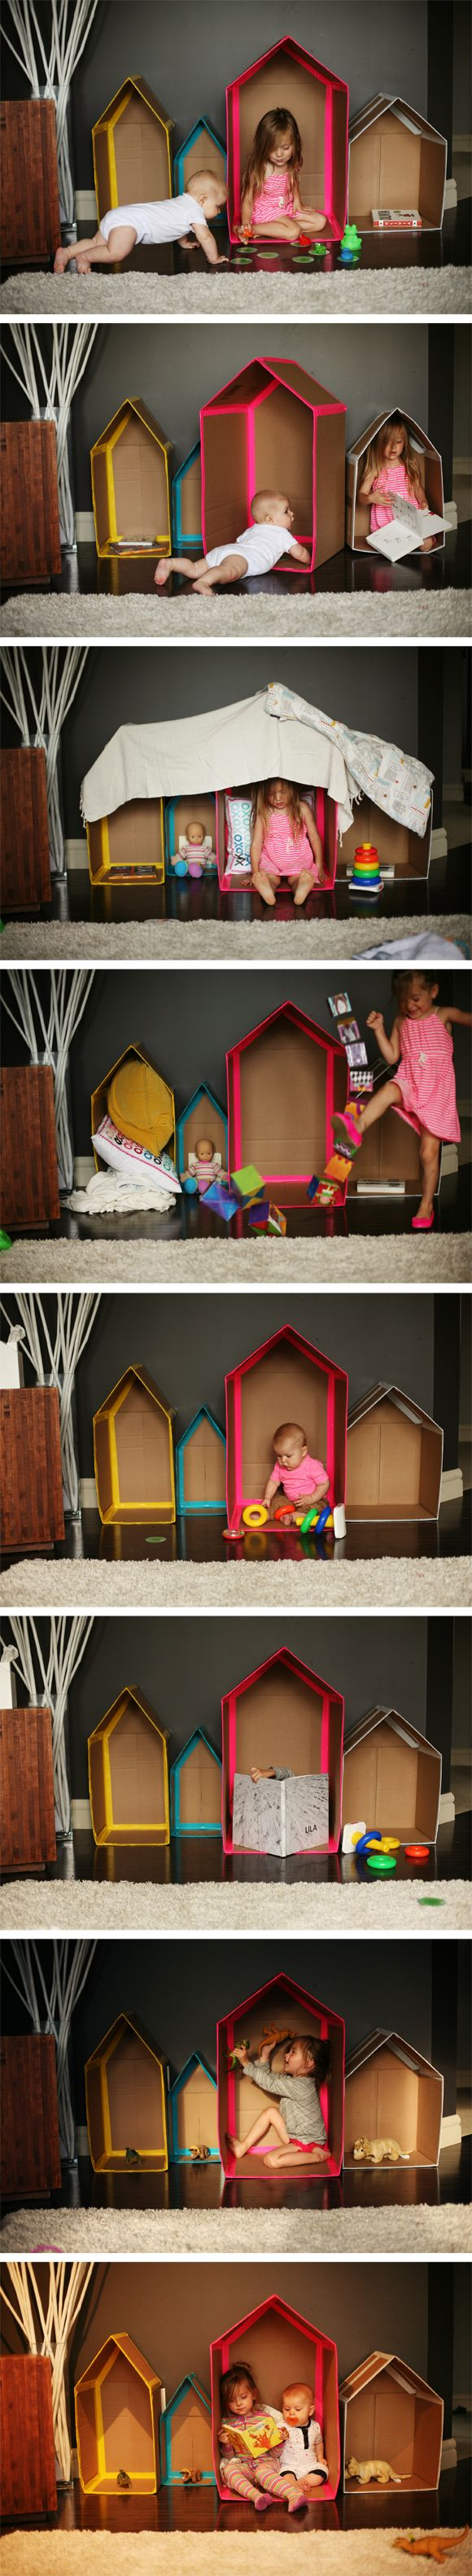 Pink Sugarland does the Ambrosia creative cardboard play houses.